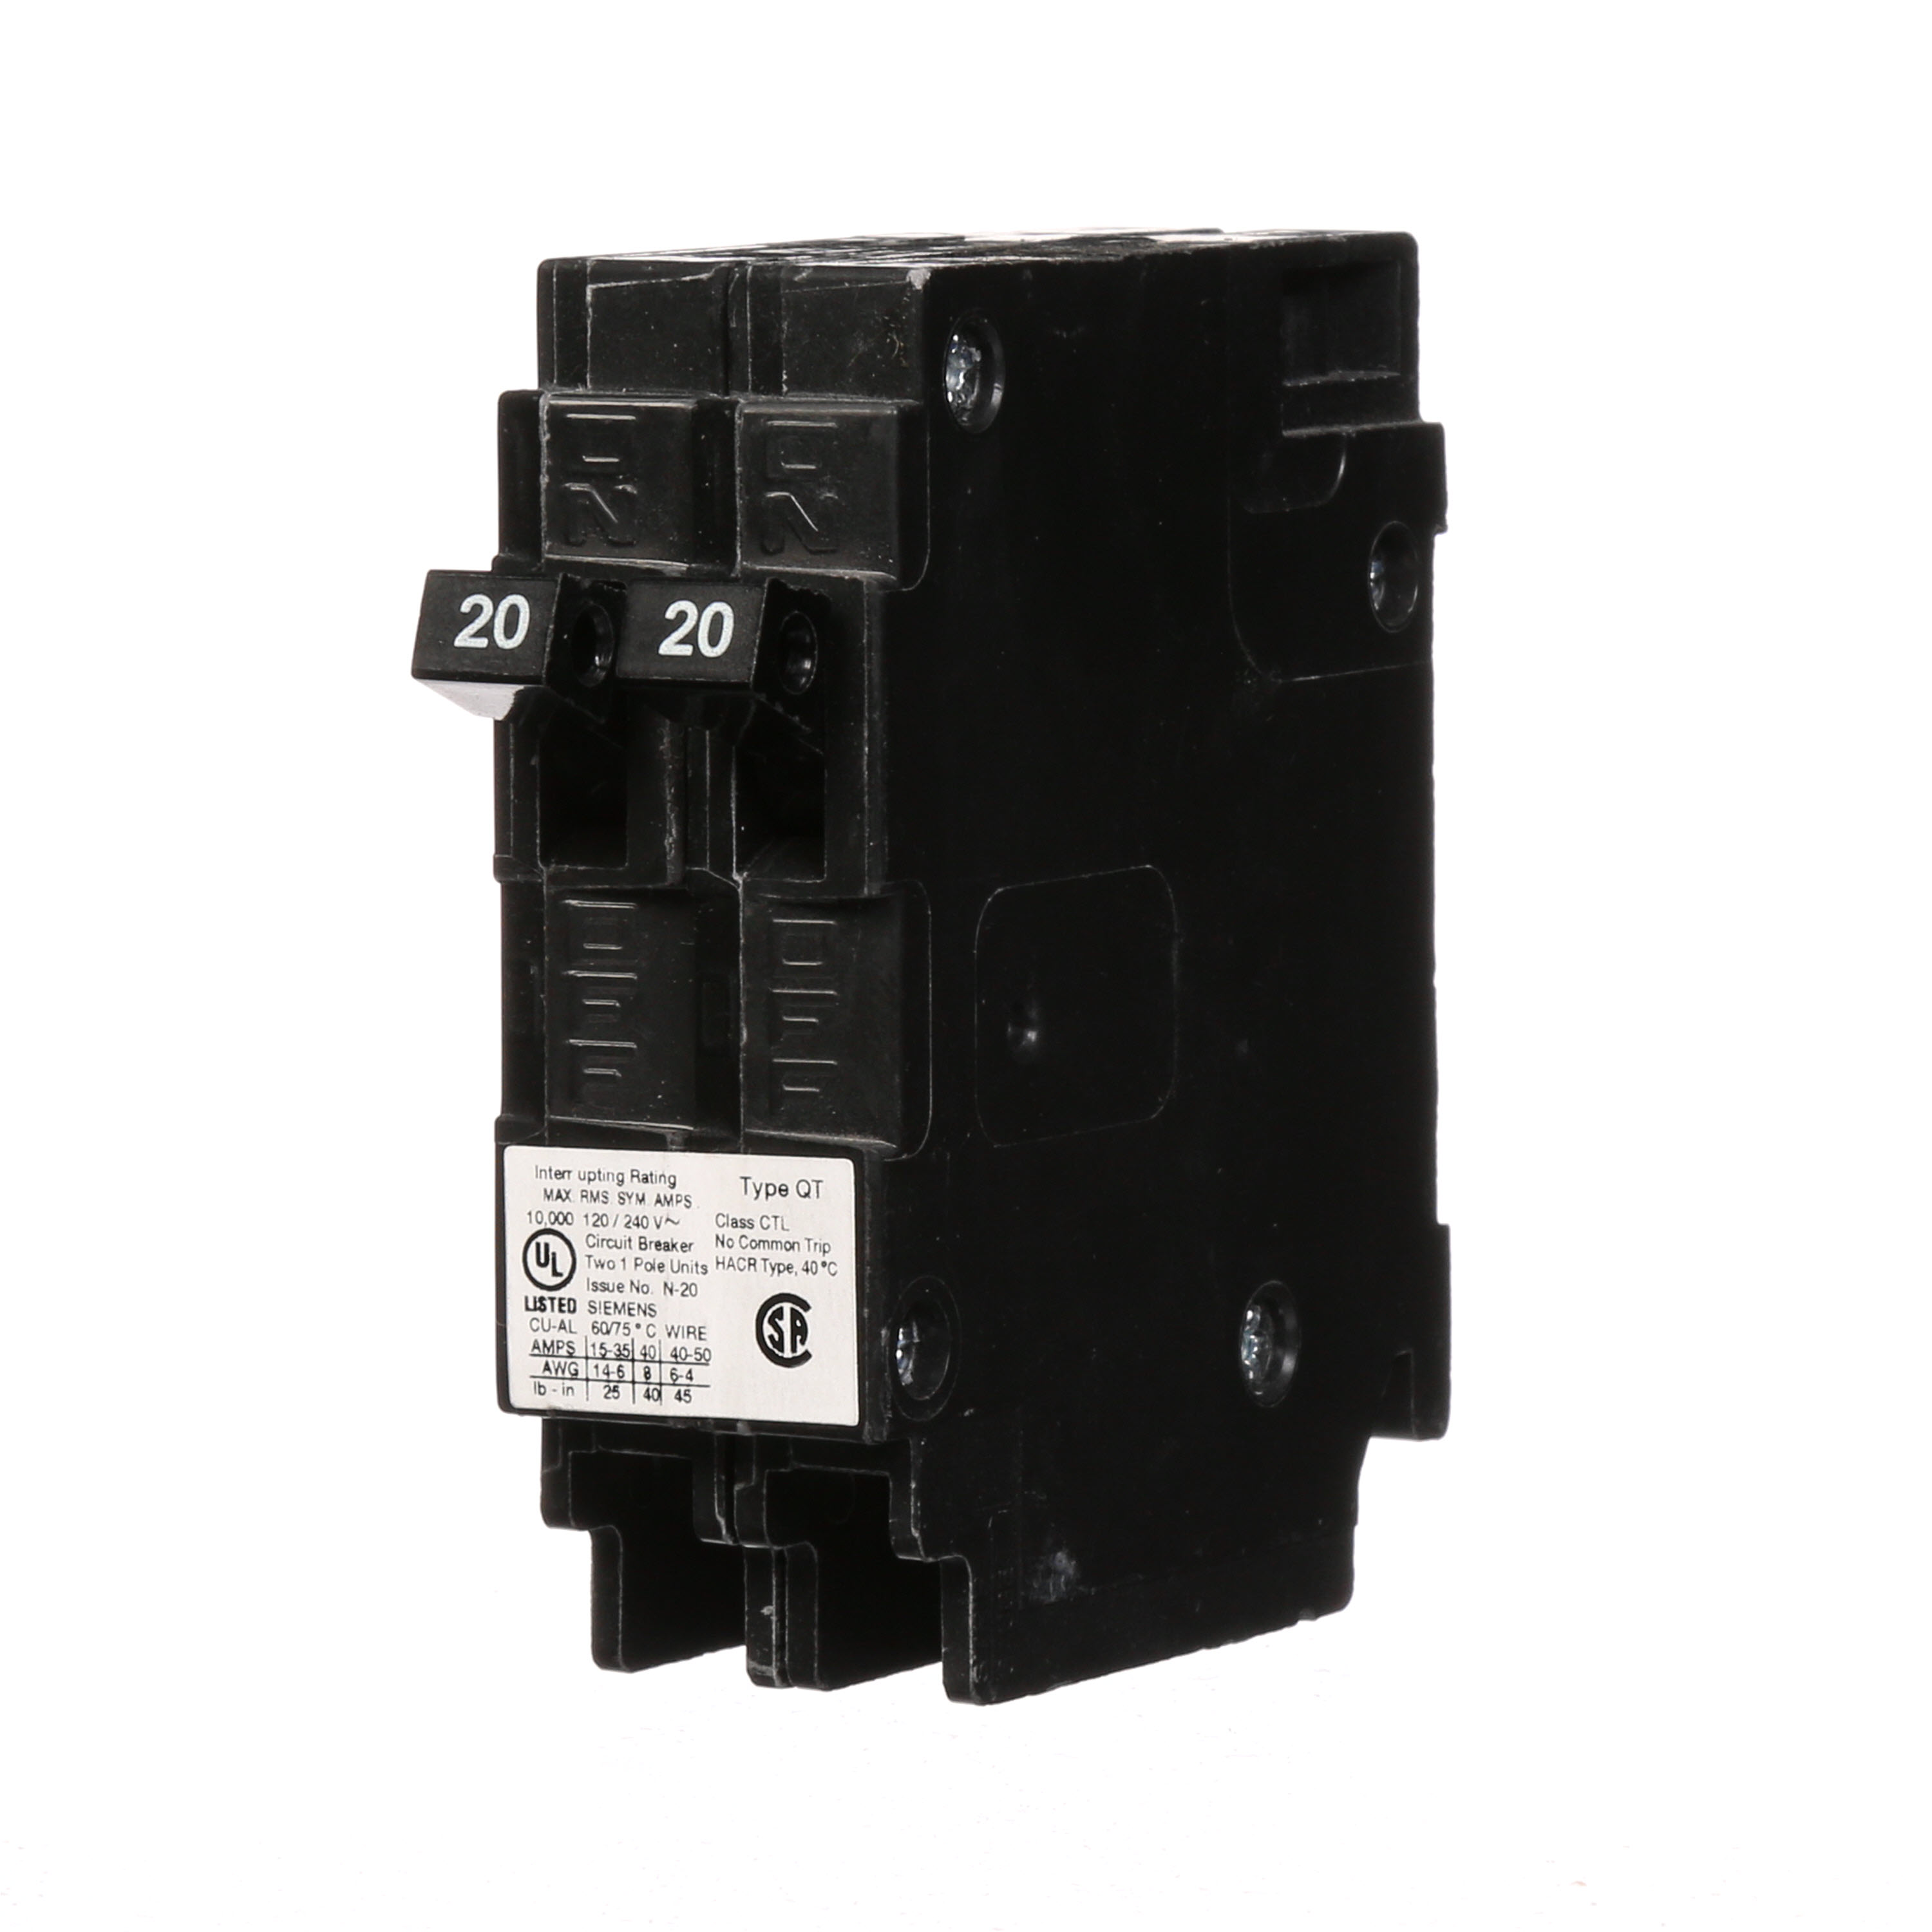 Siemens Q120 Molded Case Circuit Breaker With Insta-Wire, 120 VAC, 20 A, 10 kA Interrupt, 1 Poles, Thermal/Magnetic Trip